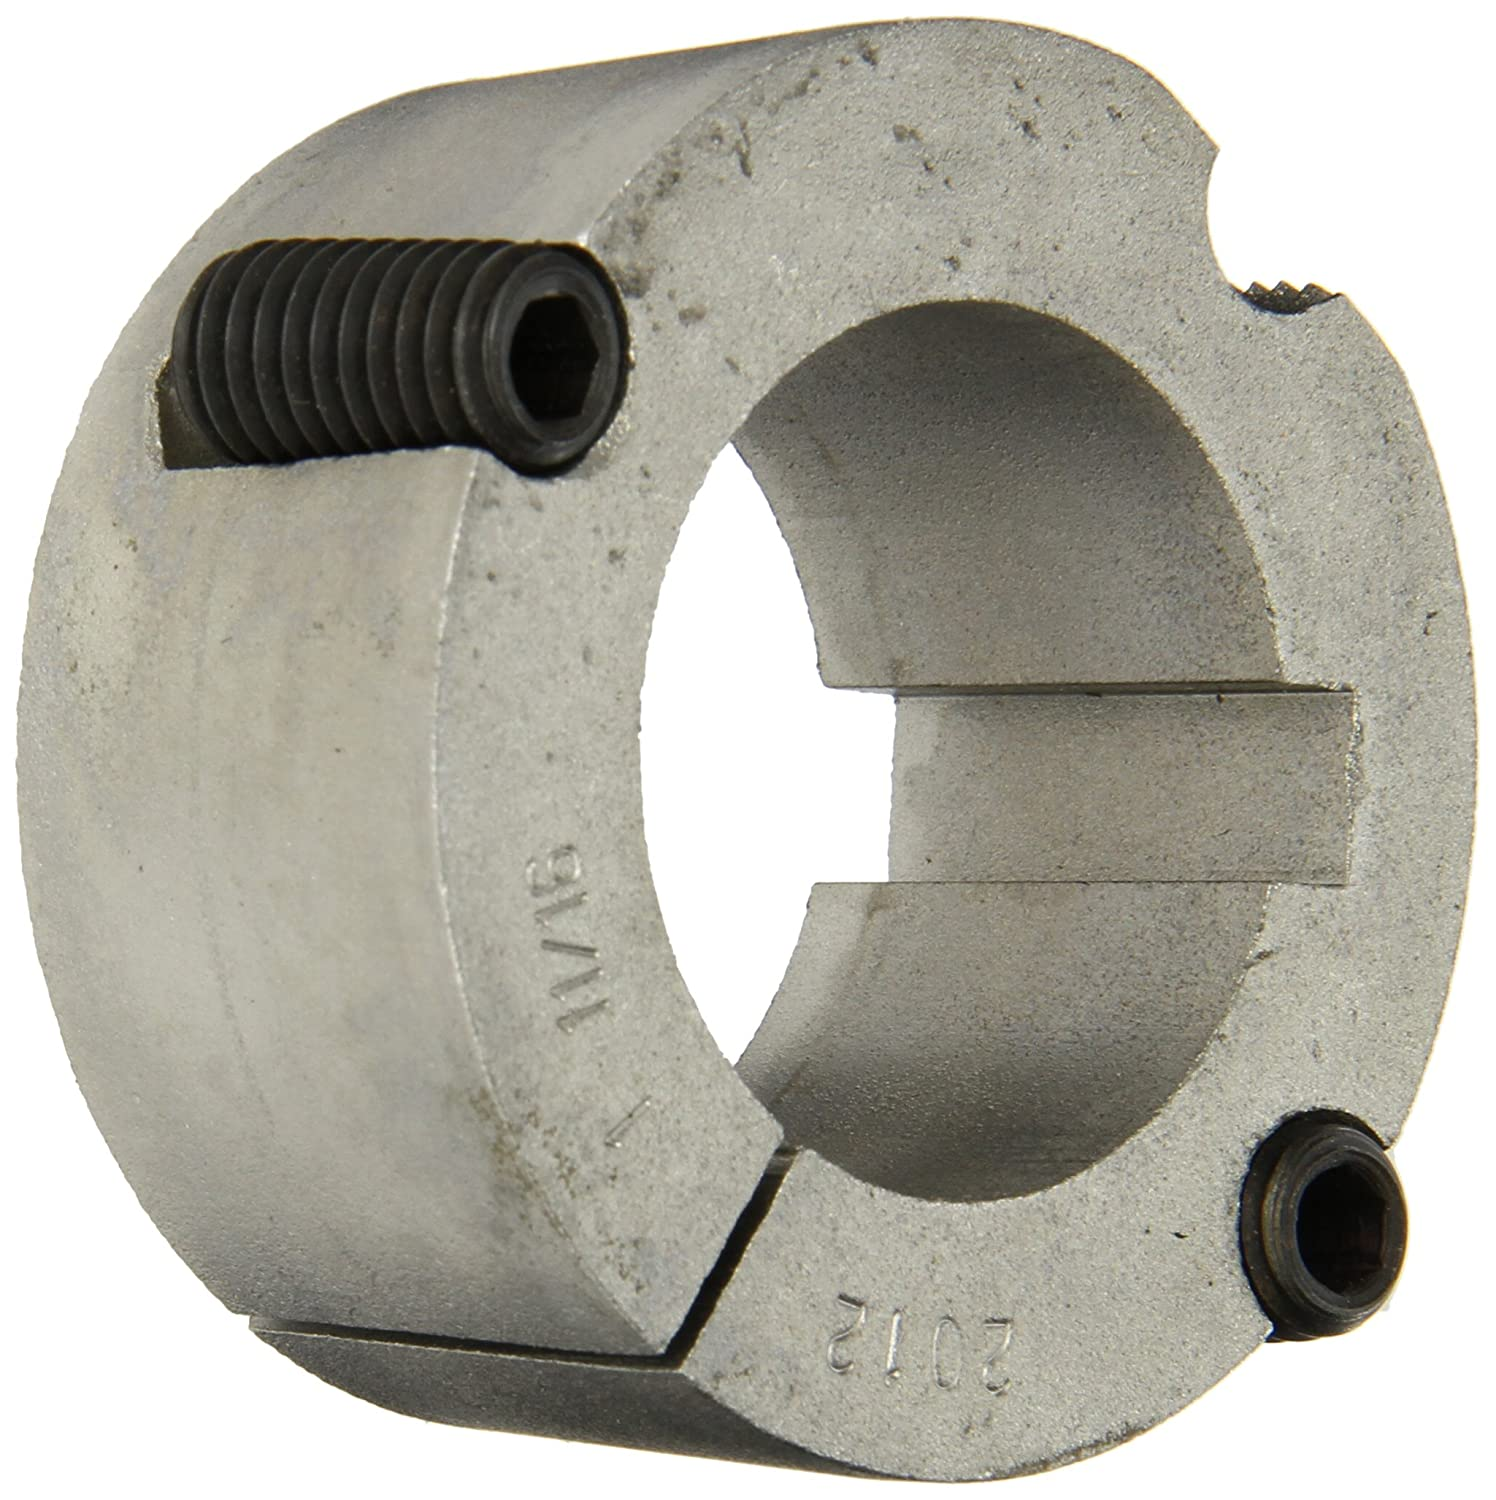 Sintered Steel Martin 2012 1 11//16 Taper Bushing Inch 1.69 Bore 2.75 OD 1.25 Length